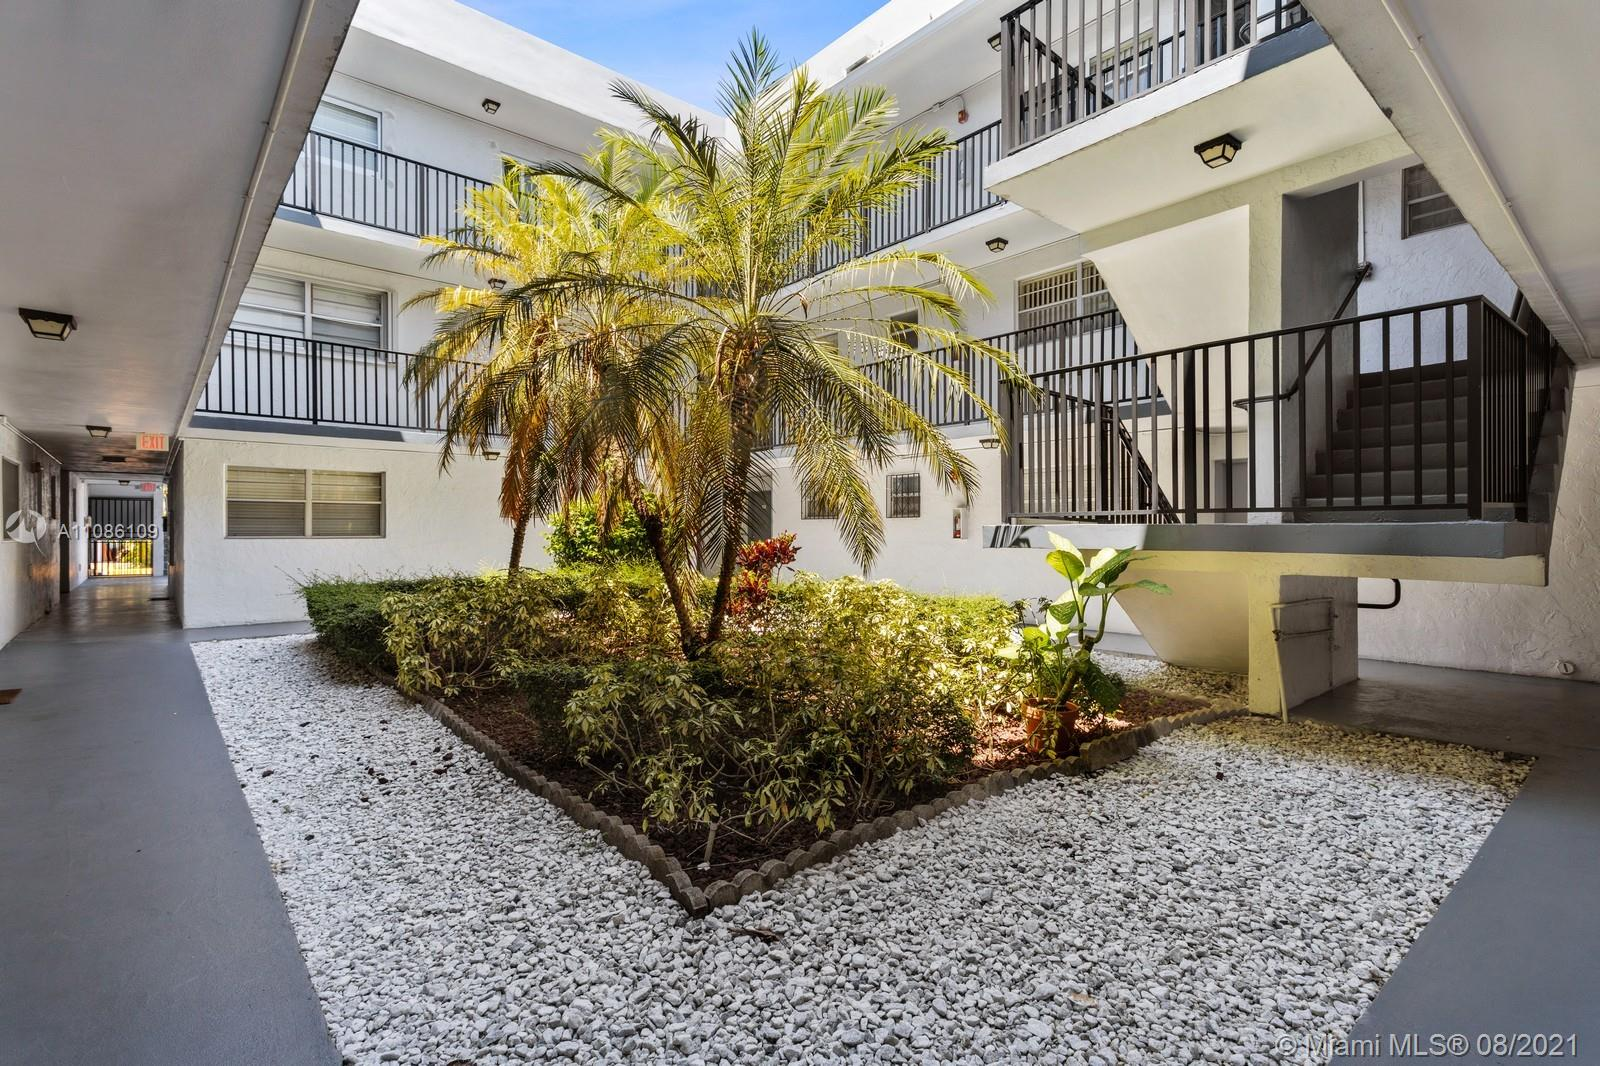 Sought-after location in Grove Gardens Condo. One (1) bedroom, one (1) bath unit, assigned parking space, gated community, swimming pool and short distance to Coconut Grove, Downtown Miami, and UM in Coral Gables. Also, for sale at $175,000. Easy to show!